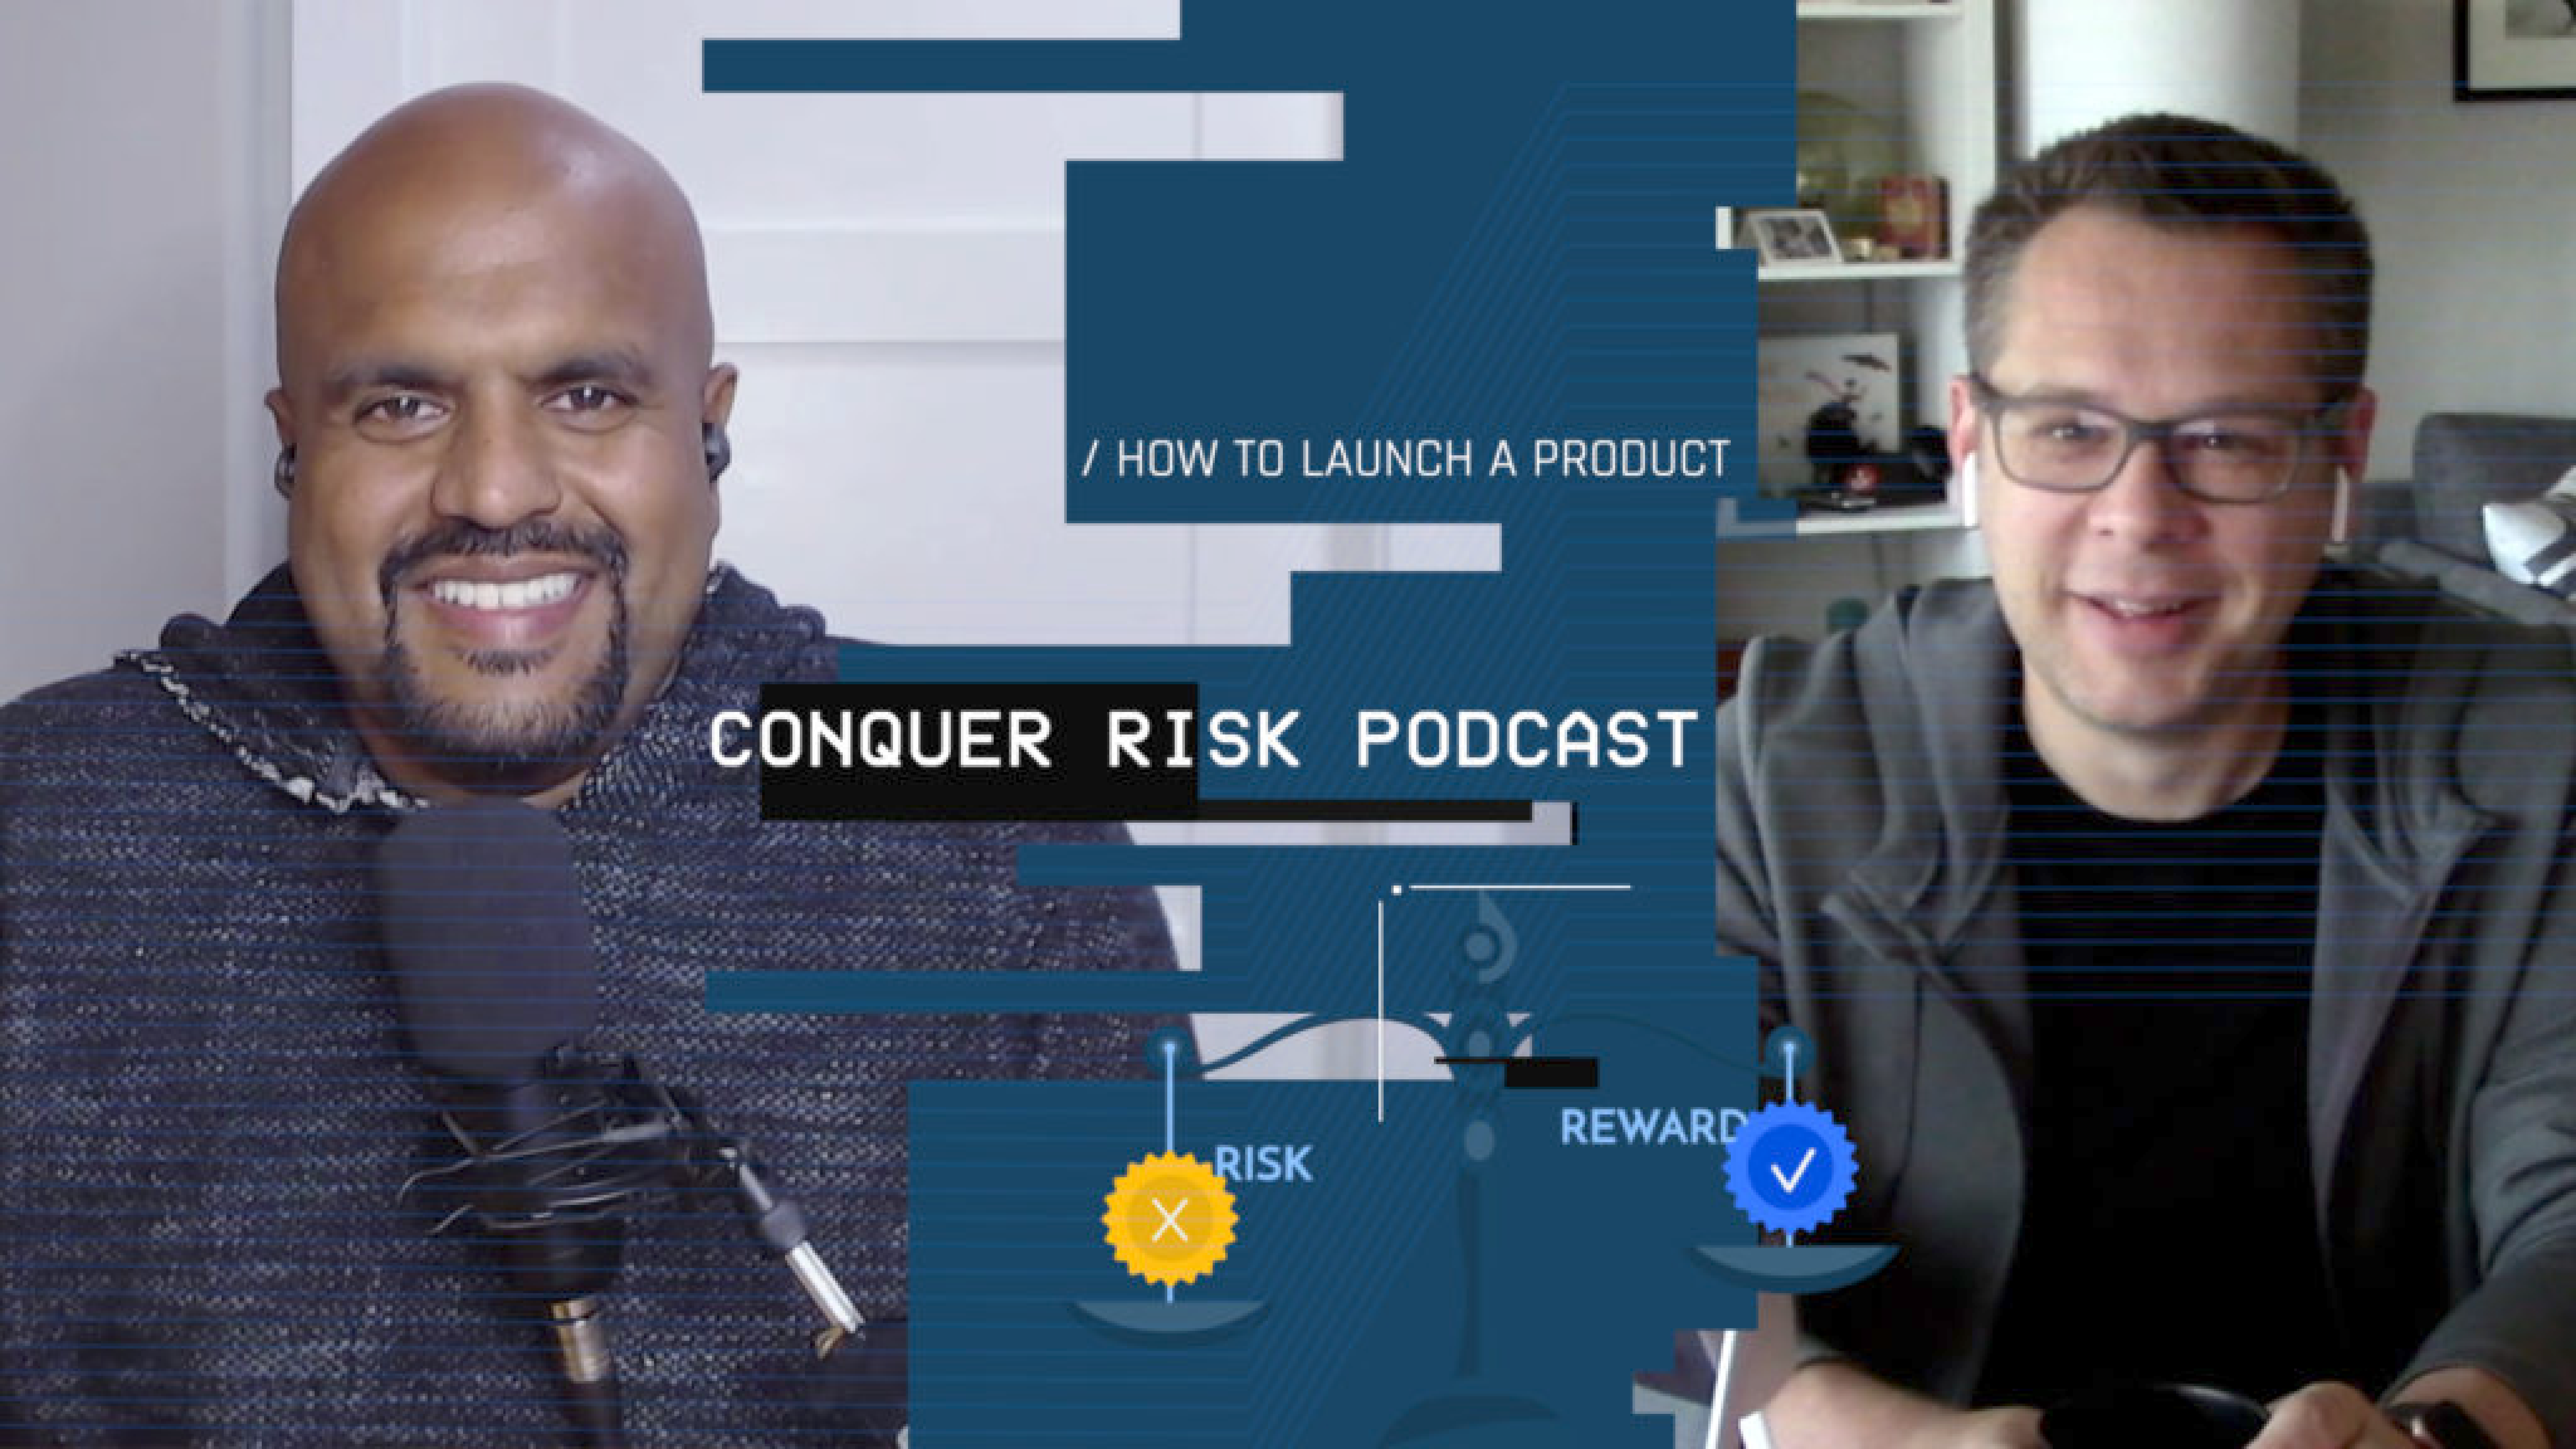 How to Launch a Product (with a Limited Budget) S3 E3